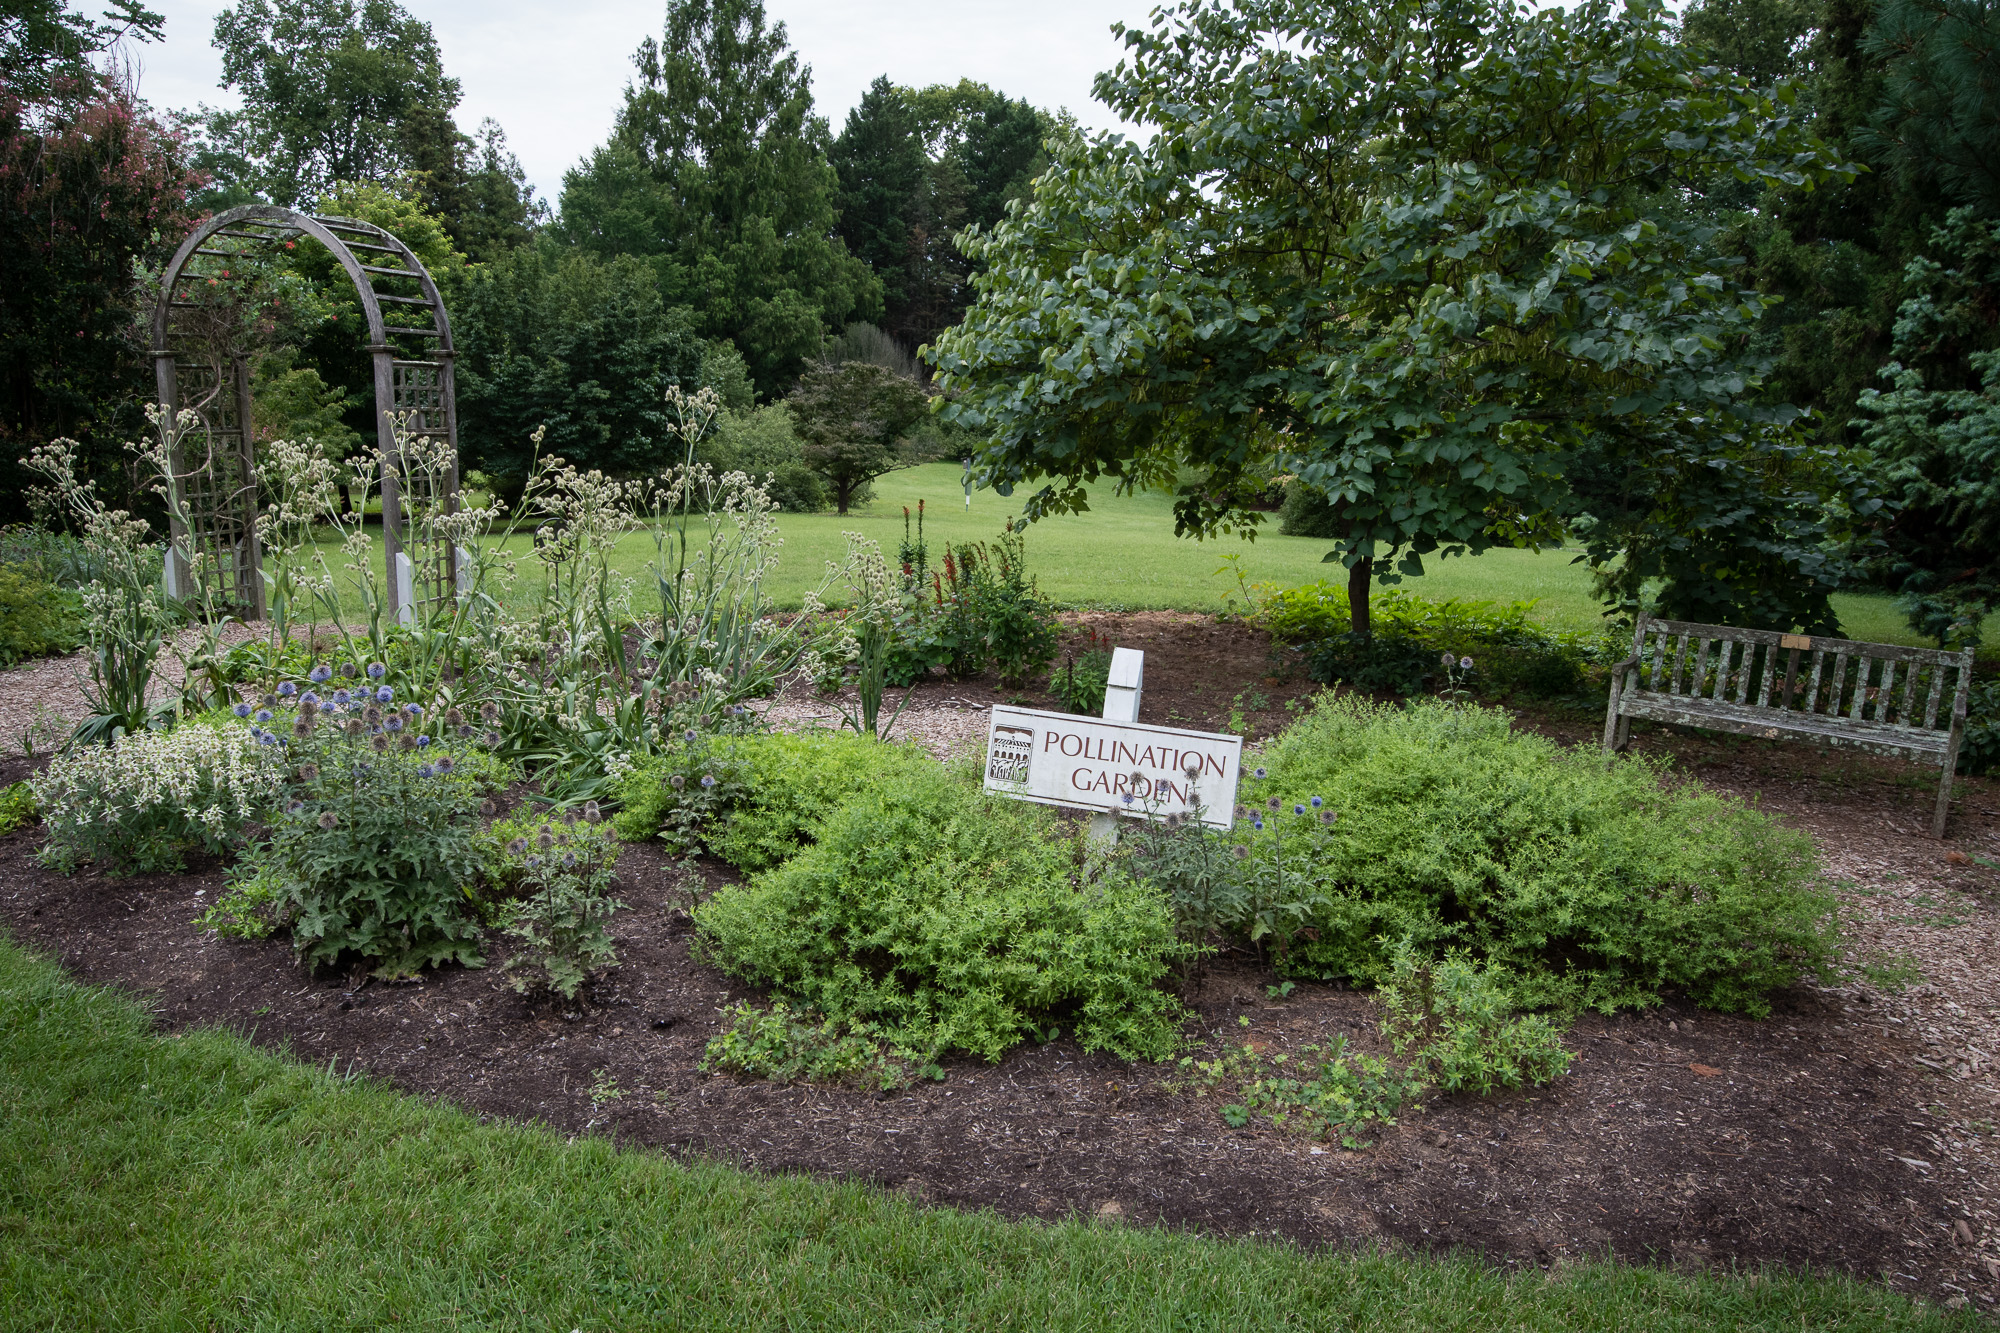 The Arboretum has many gardens, this one being a pollination garden.